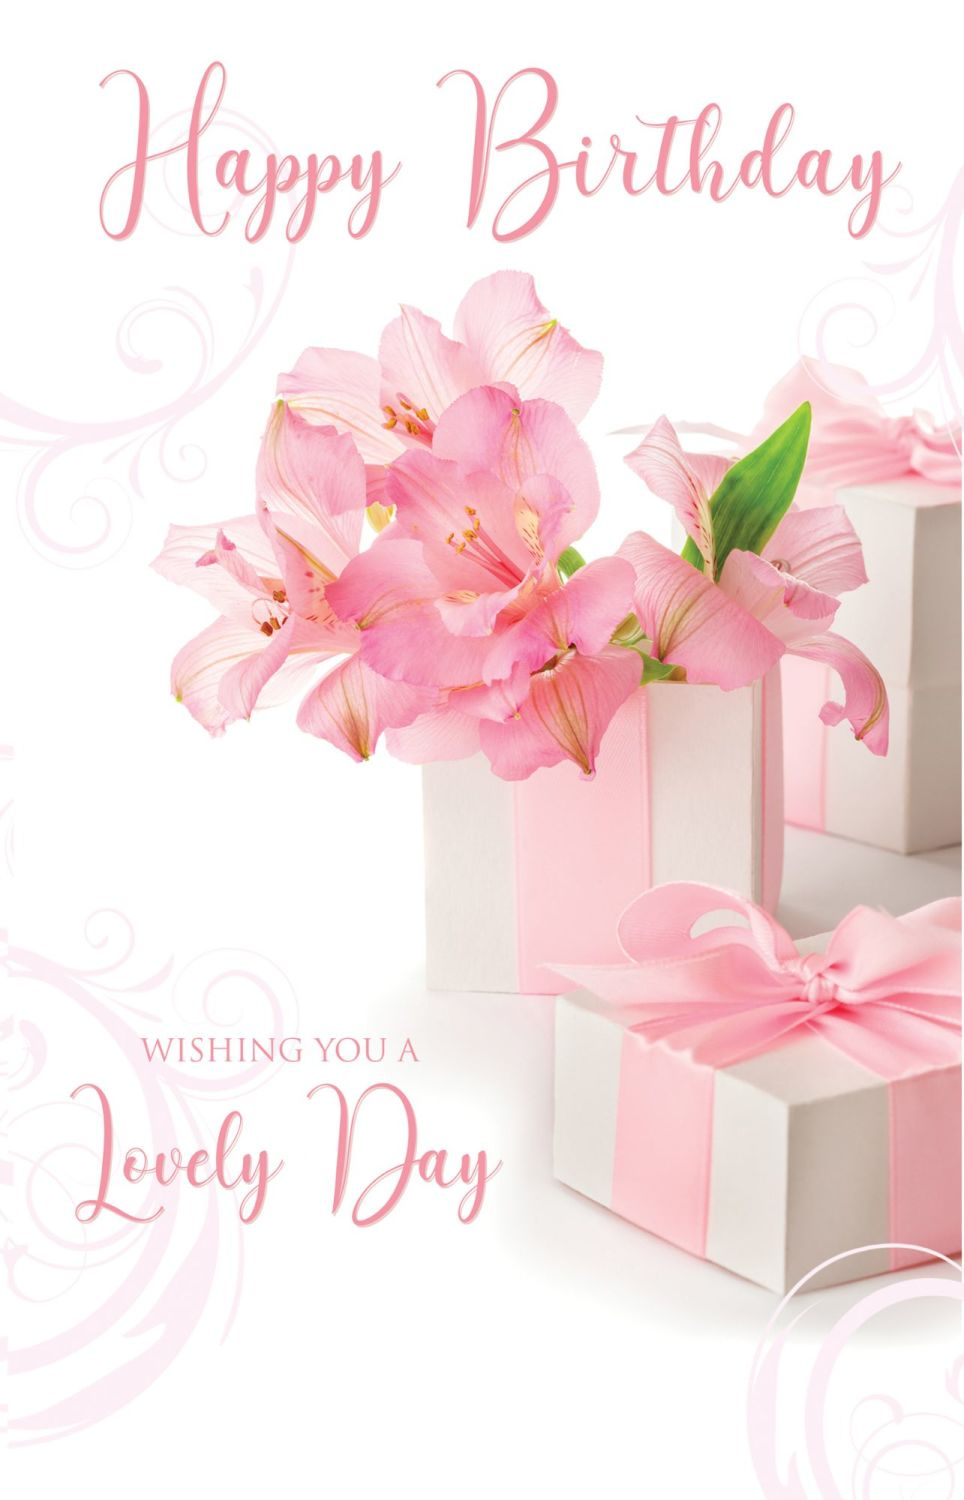 Birthday Cards For Her - WISHING You A LOVELY Day - LILY Birthday CARD - PR